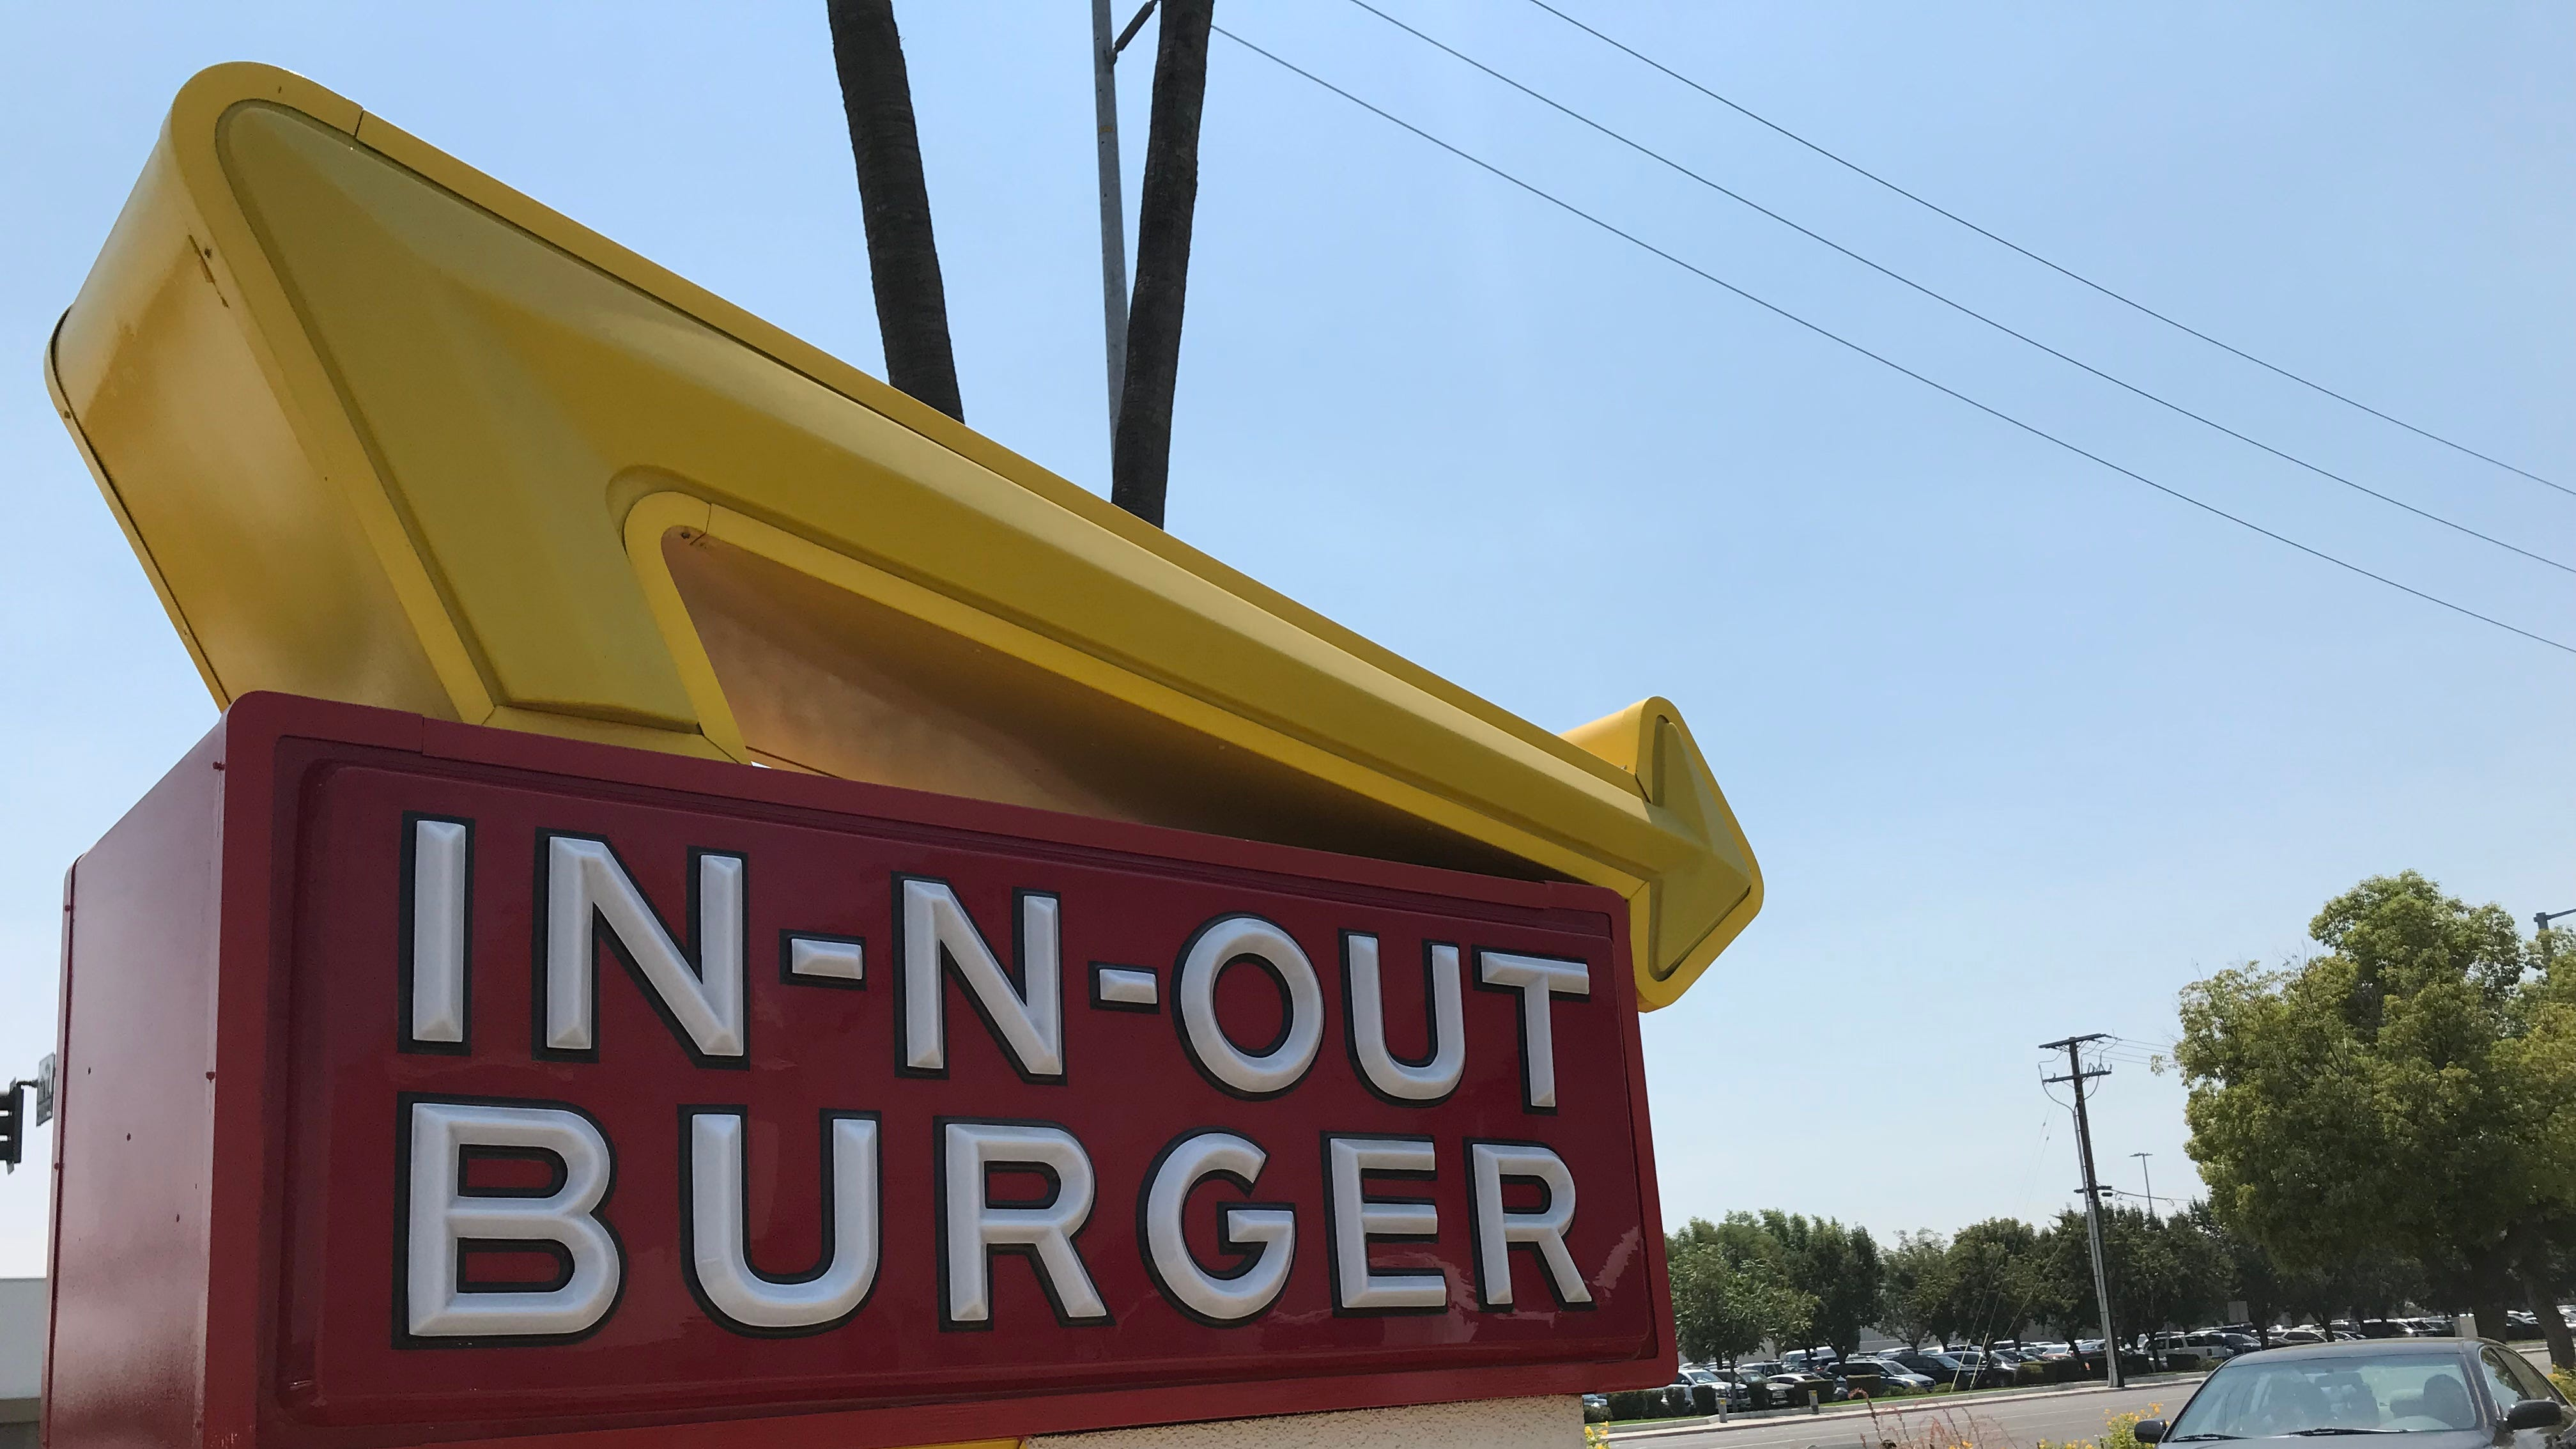 Cathedral City wants an In-N-Out by 2019. Will it happen in any desert cities?